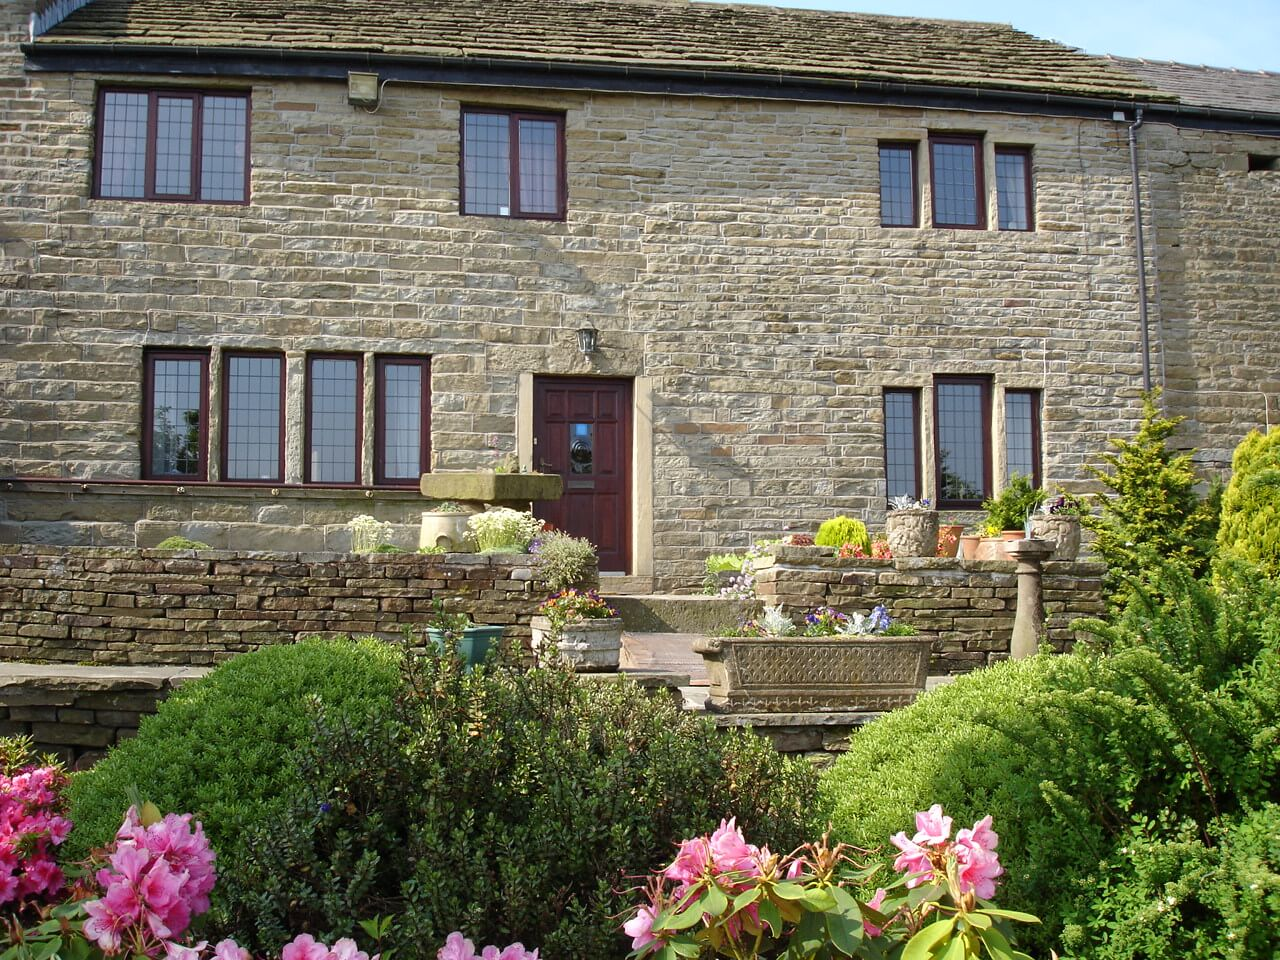 An impressive, stone-built farmhouse